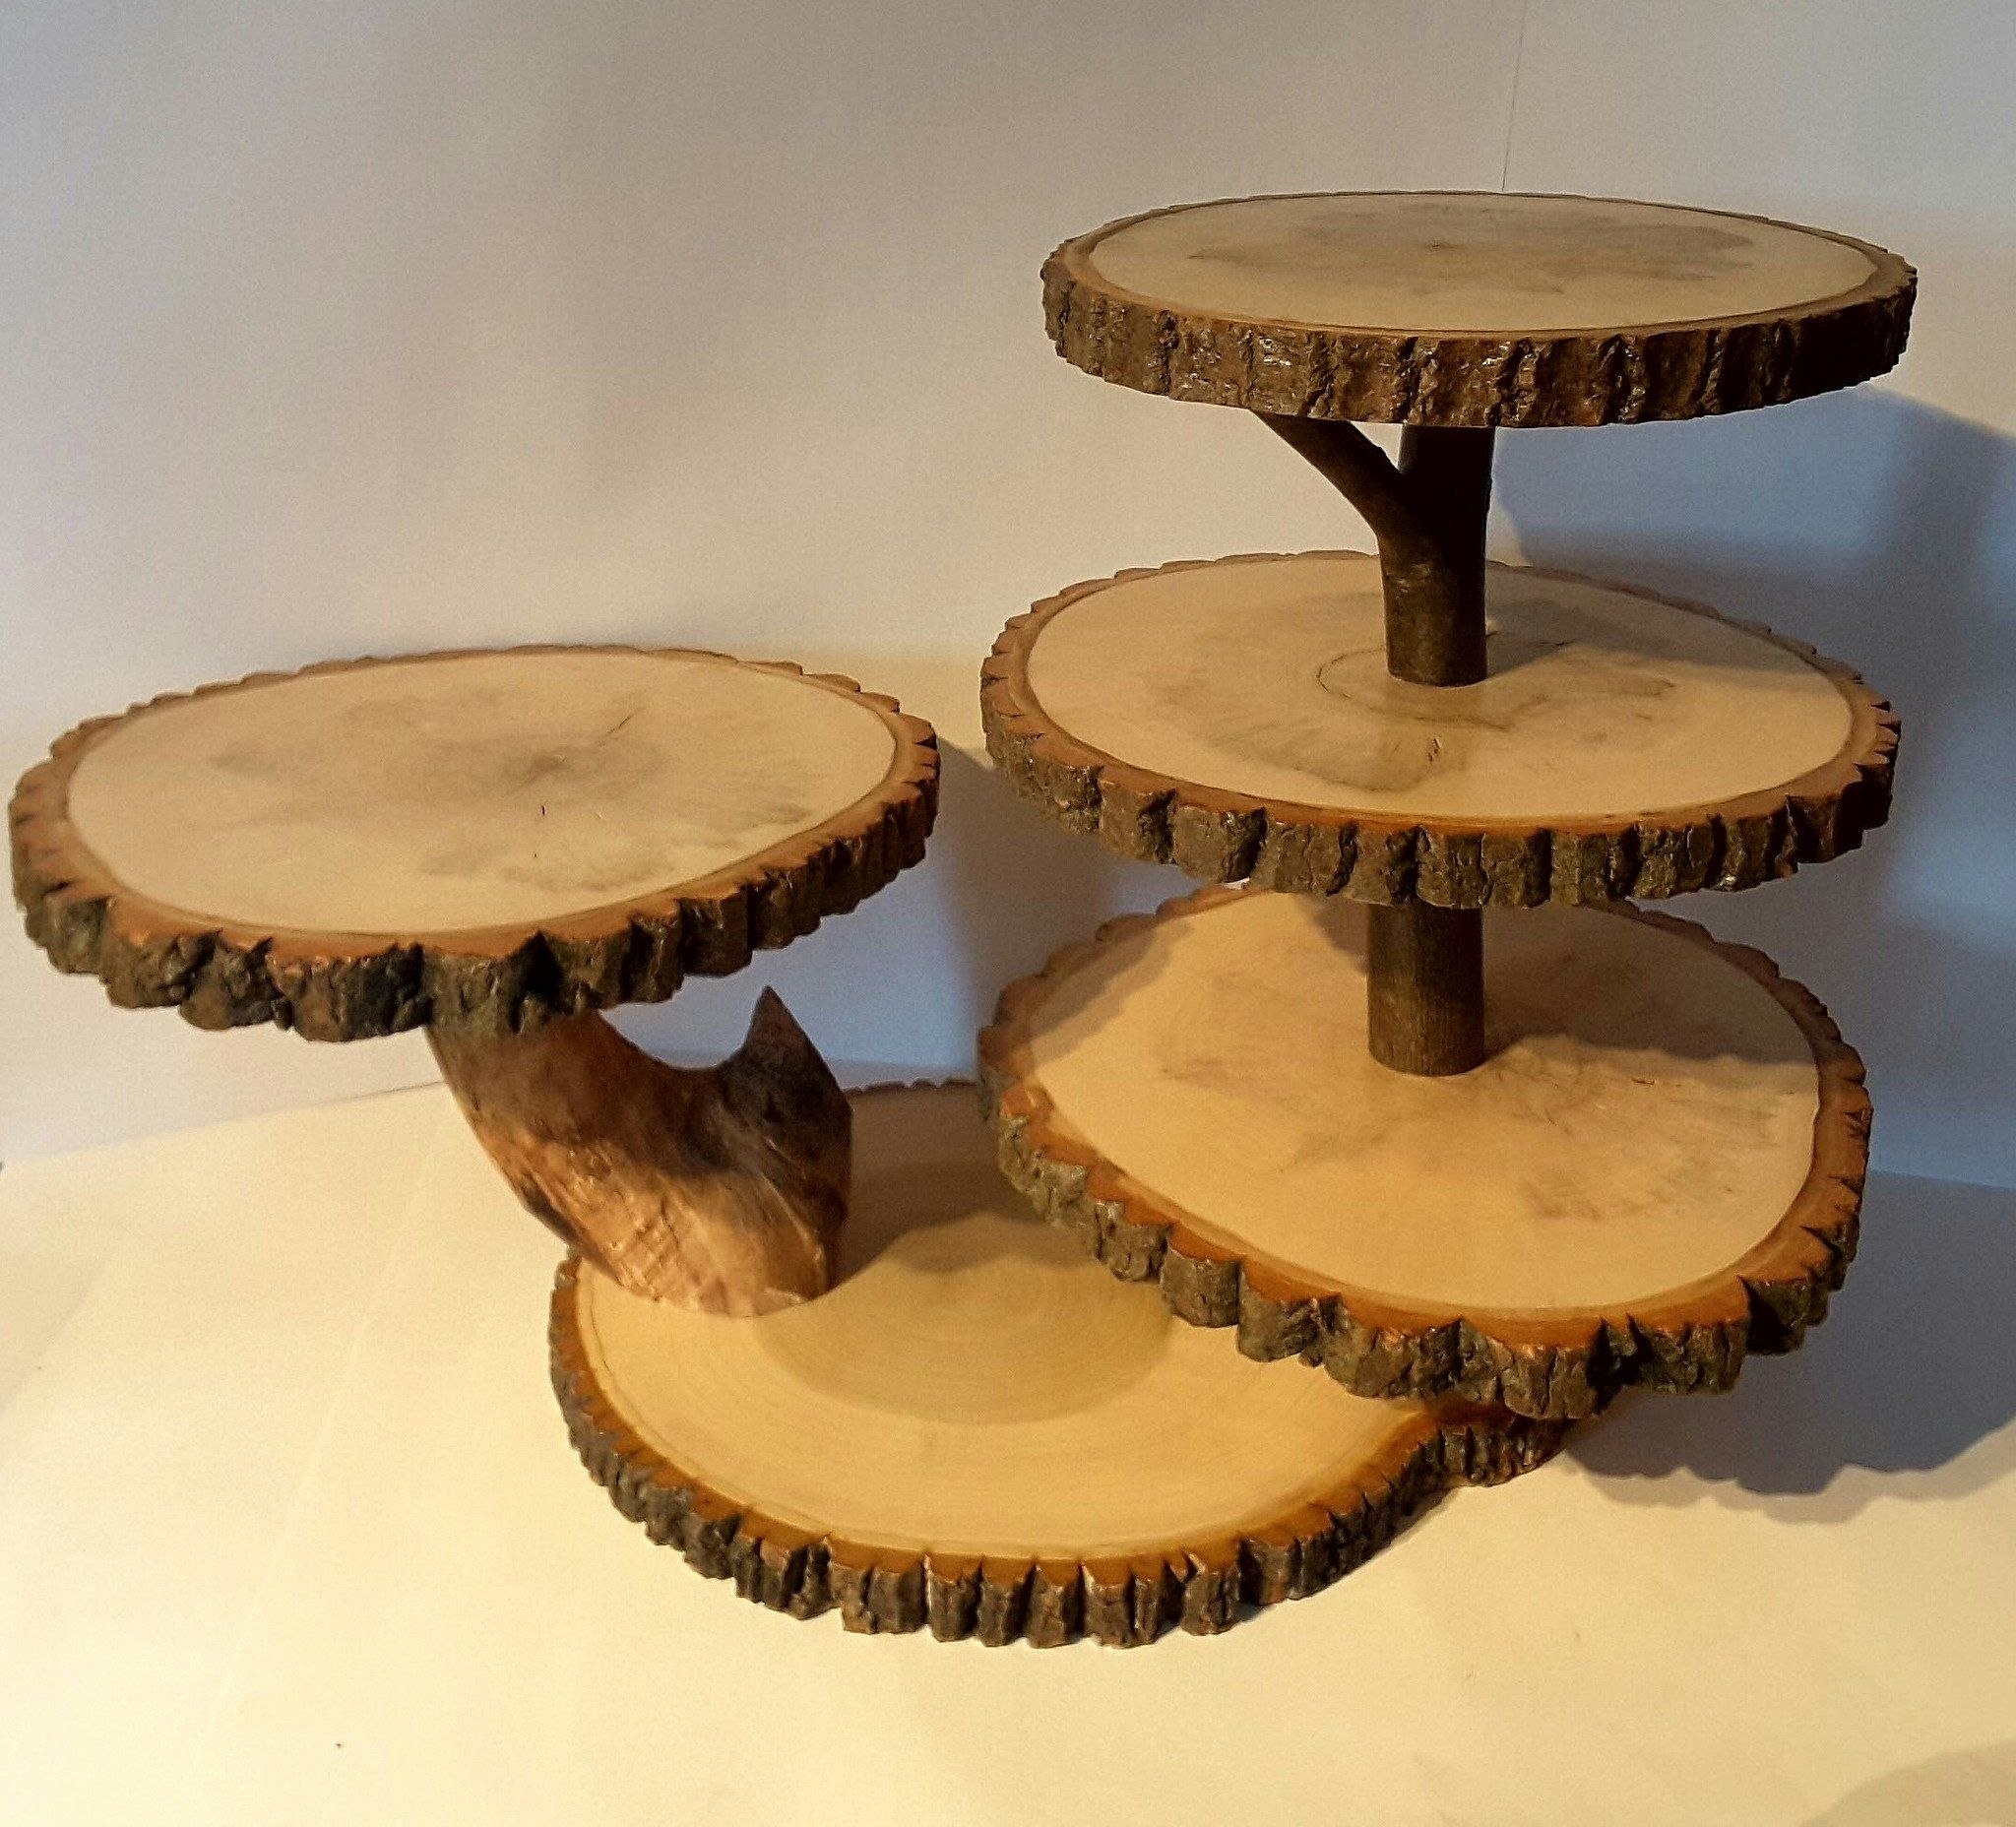 Rustic Cake Stand Rustic Cupcake Stand Wedding Decoration: Large Tree Slice Cupcake Stand, Rustic Wedding Dessert